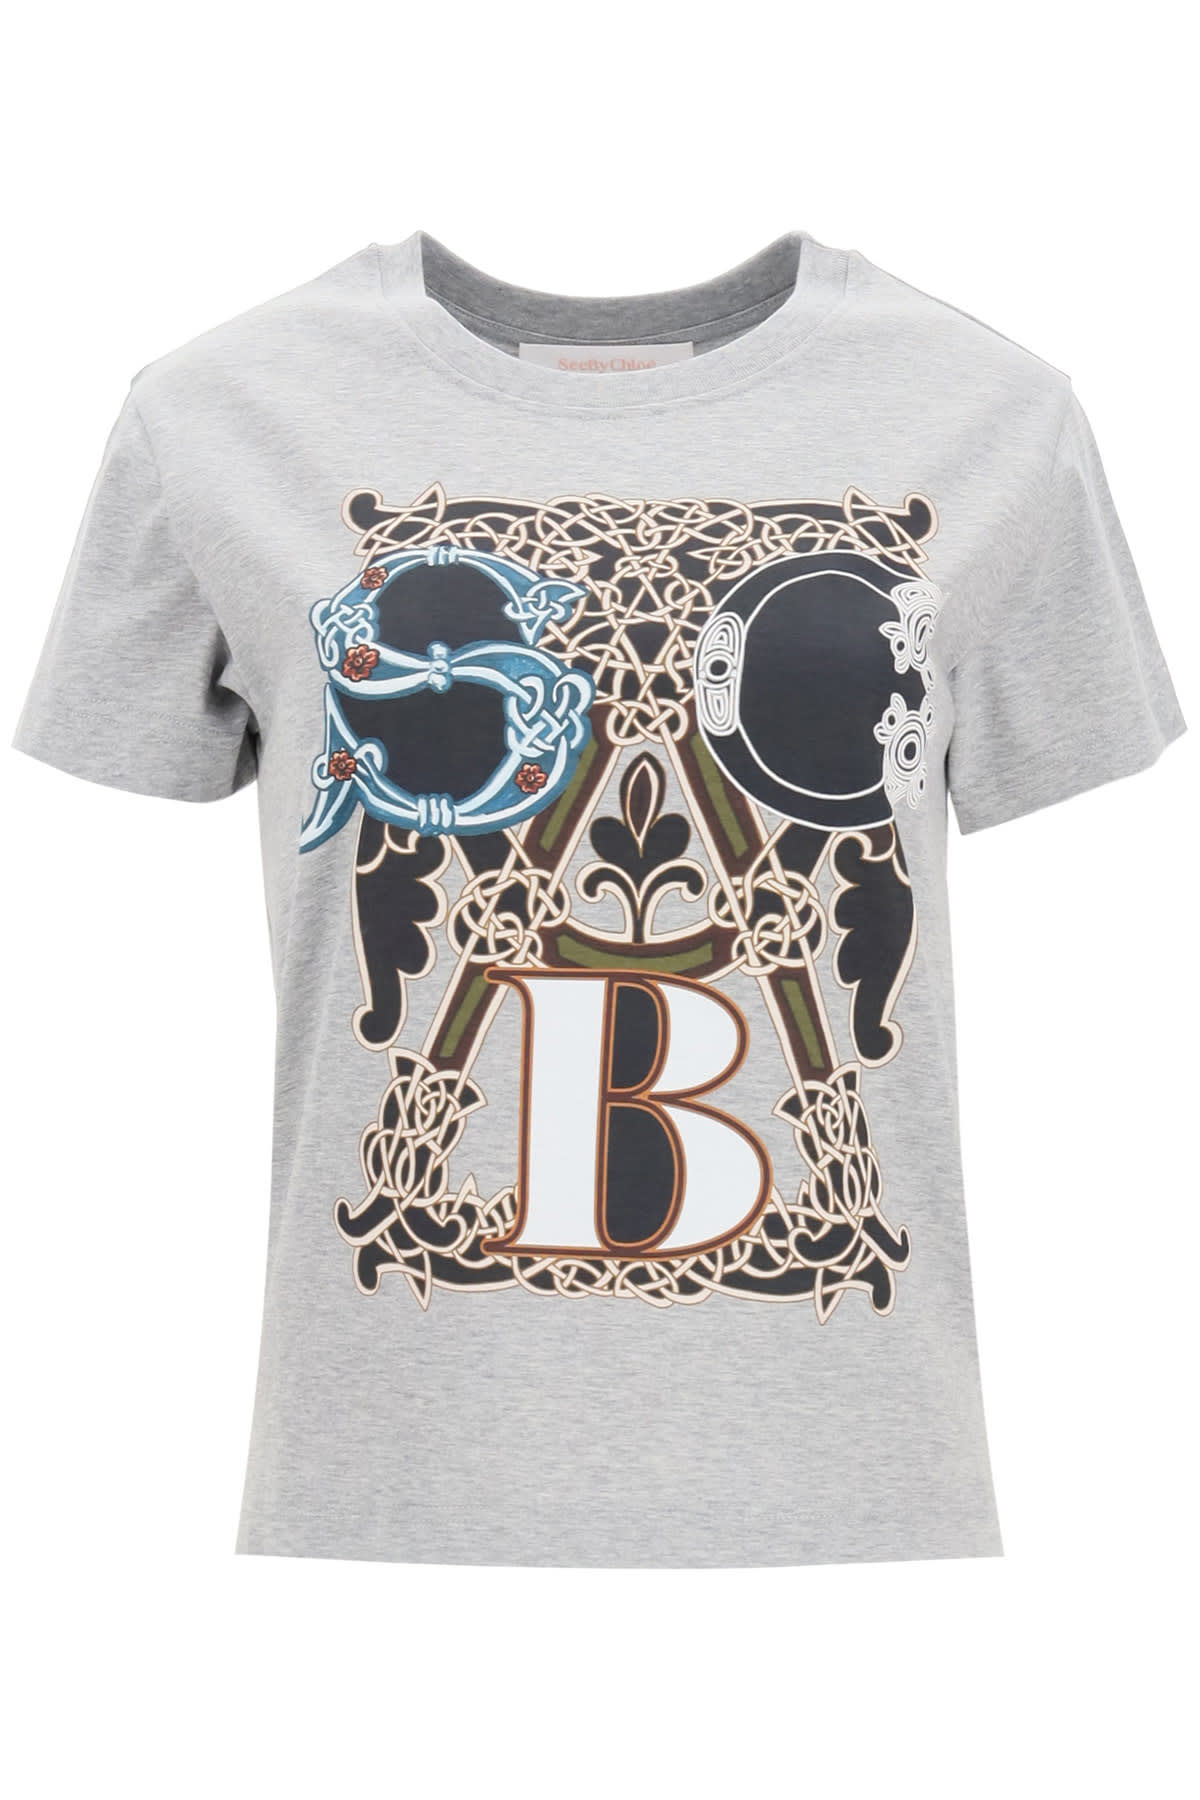 SEE BY CHLOÉ T-SHIRT WITH LOGO PRINT